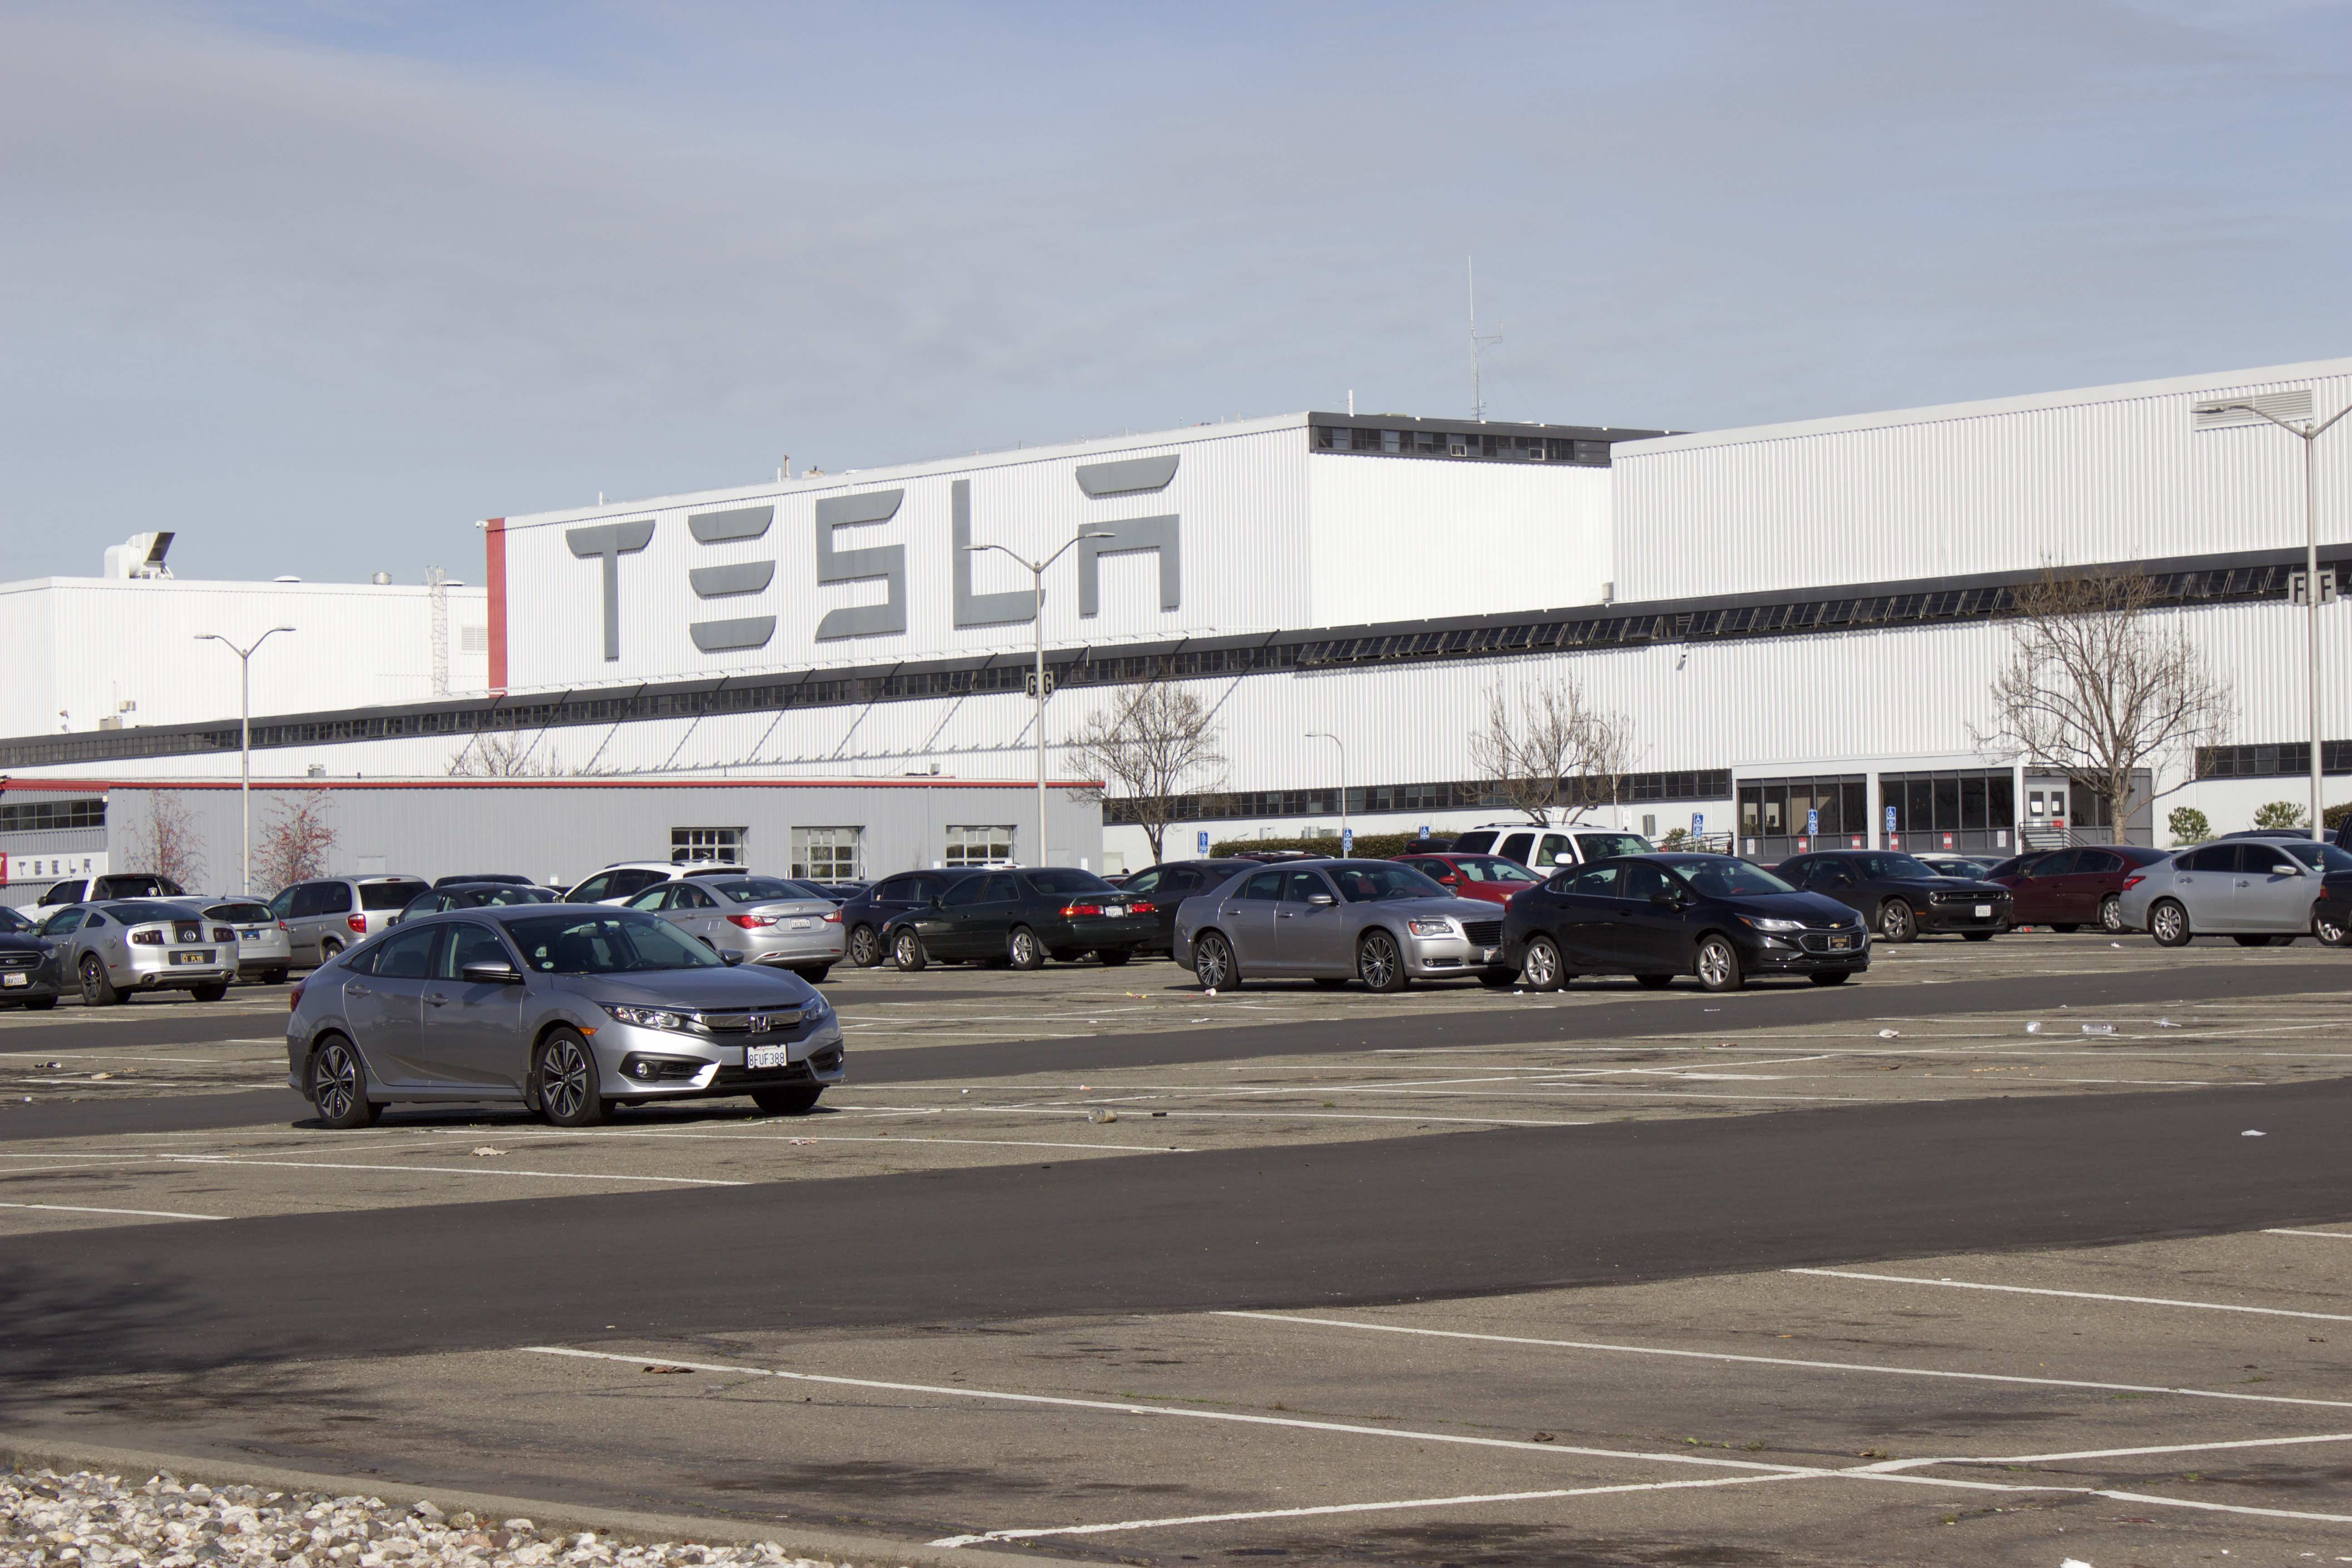 Here's how many people Tesla laid off at its California facilities